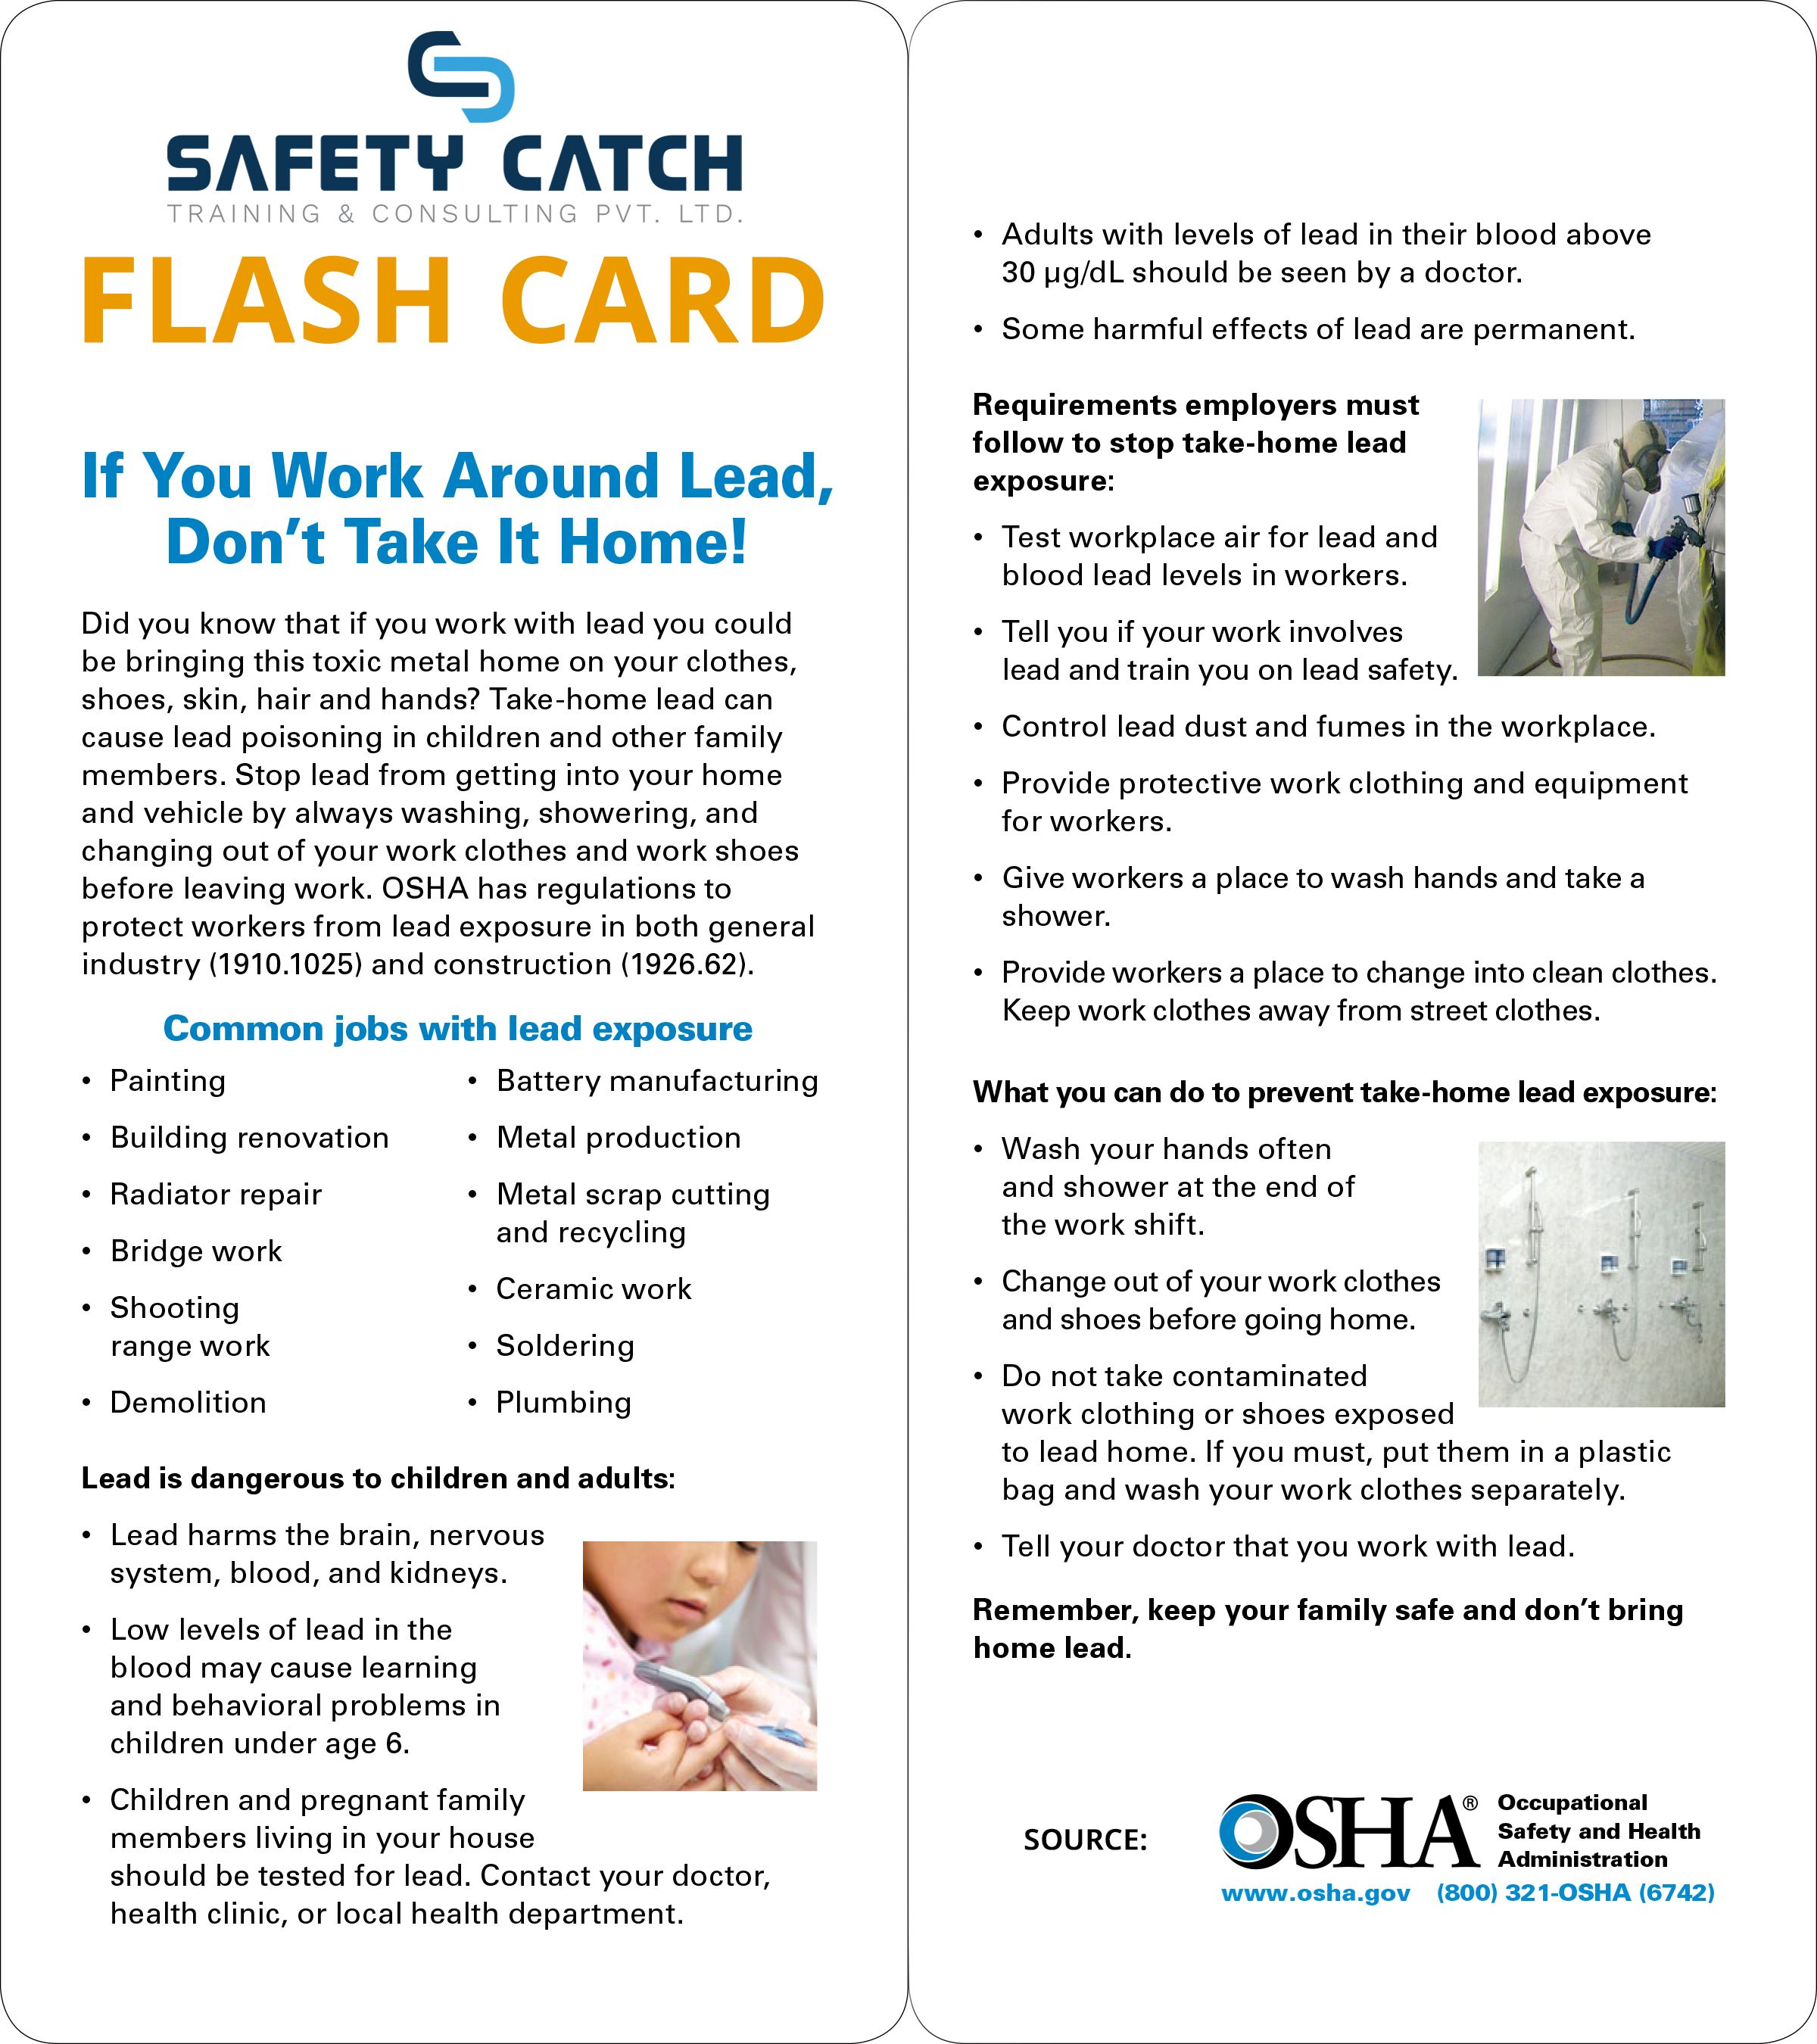 If You Work Around Lead Make Sure That You Are Aware Of These Osha Safety Guidelines In 2020 Flashcards Exam Papers Train